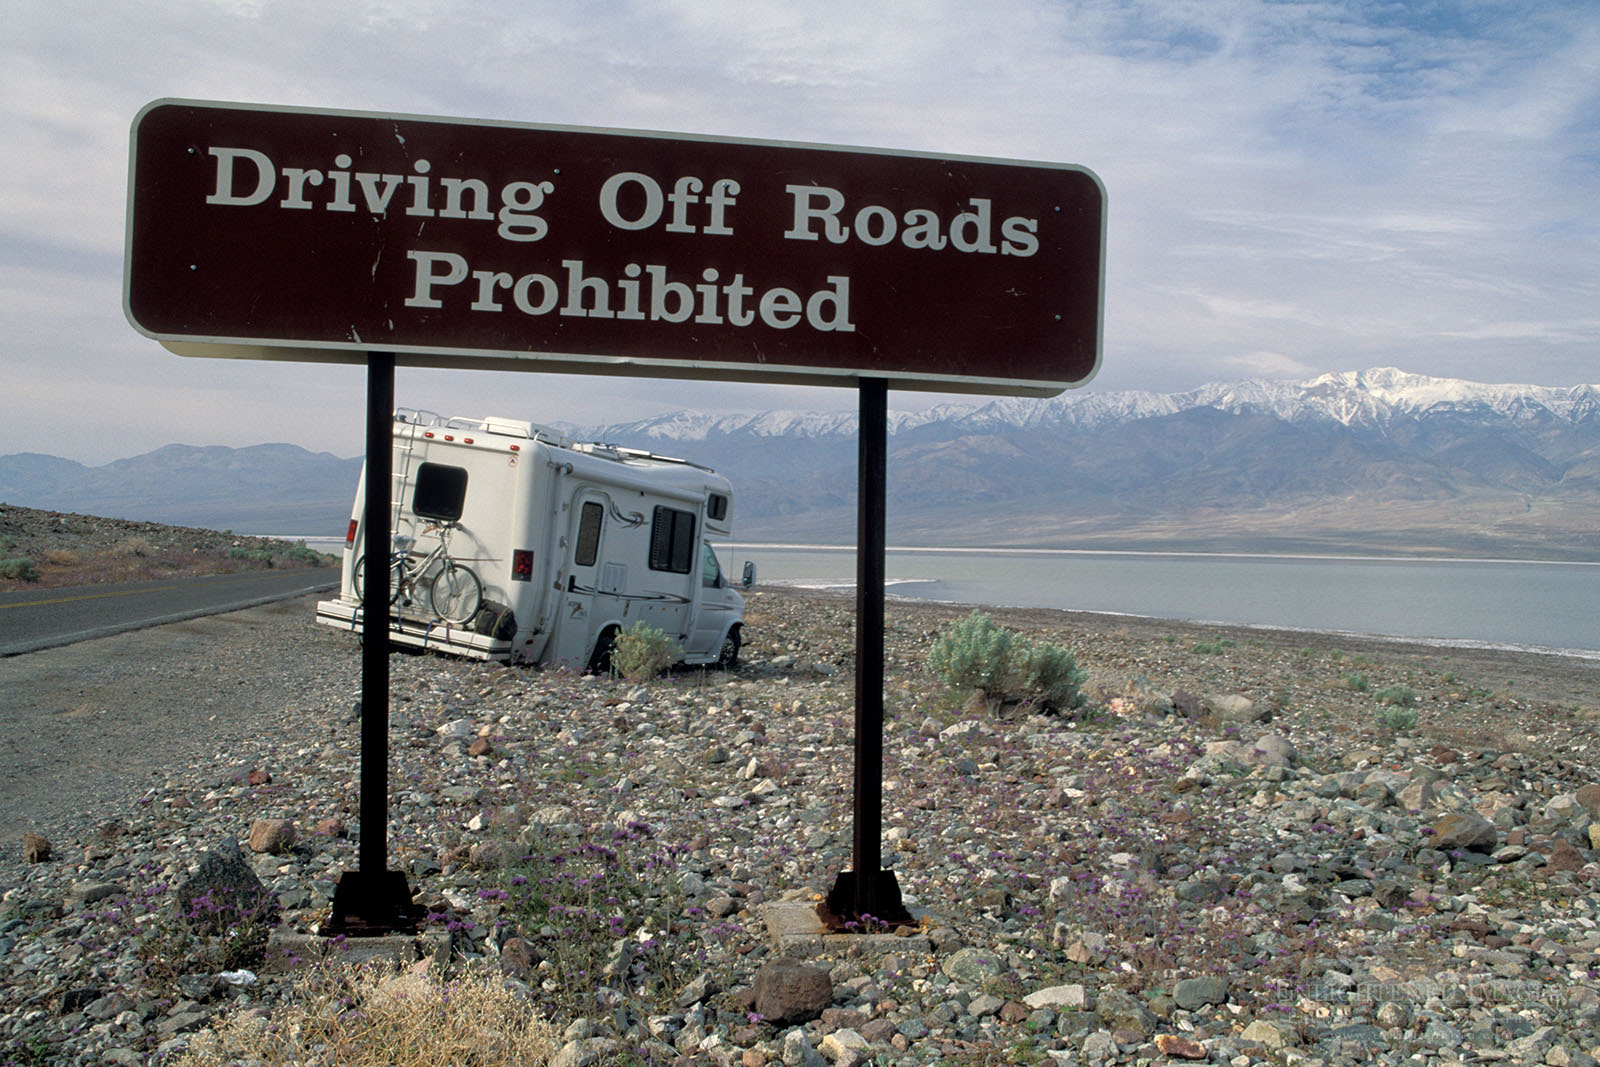 Photo: Driving off-road prohibited; Tourist RV tavel Camper stuck in desert rocks after driving offroad next to warning sign, near Badwater, Death Valley National Park, California